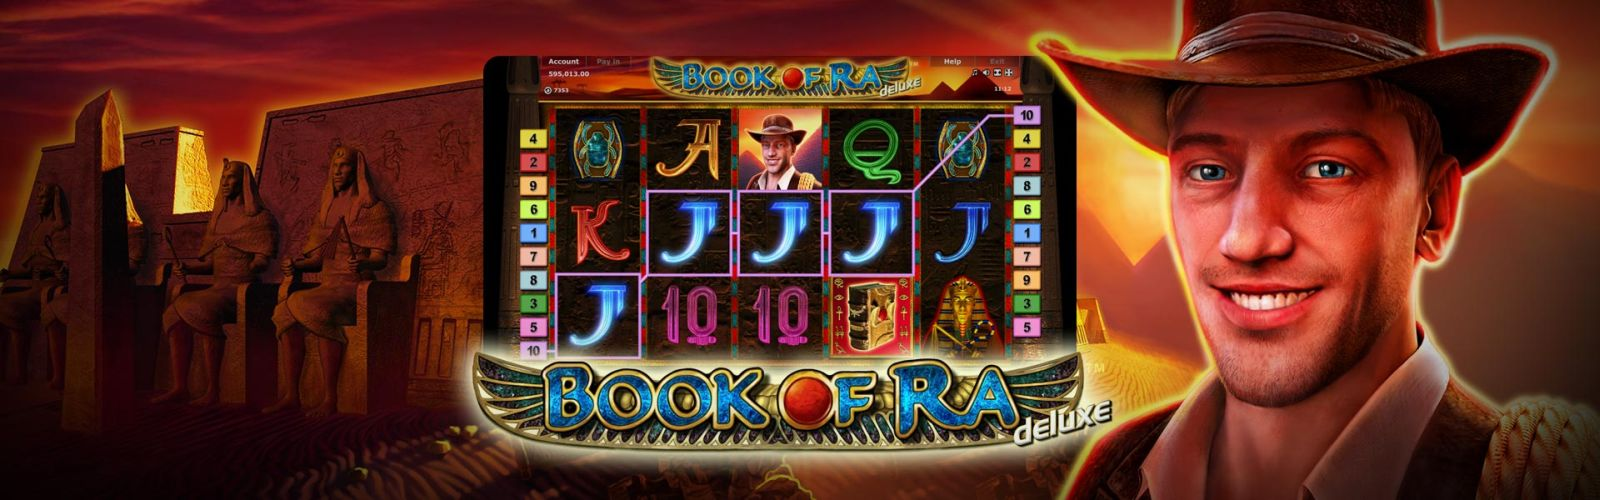 Book of ra online slot games